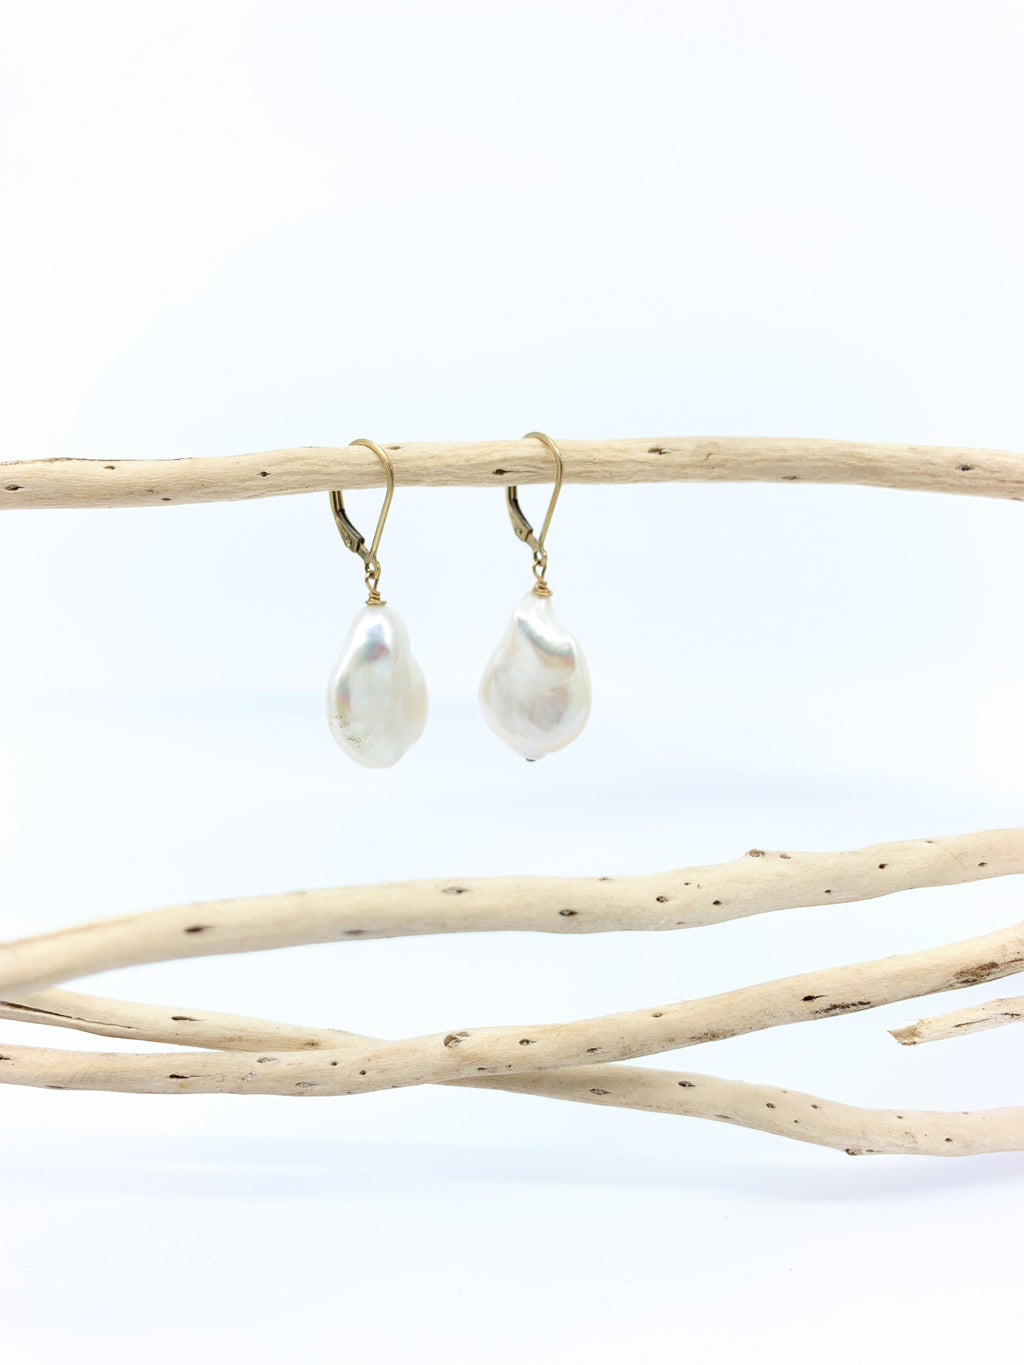 large white baroque pearl earrings with safety ear wires by eve black jewelry made in hawaii